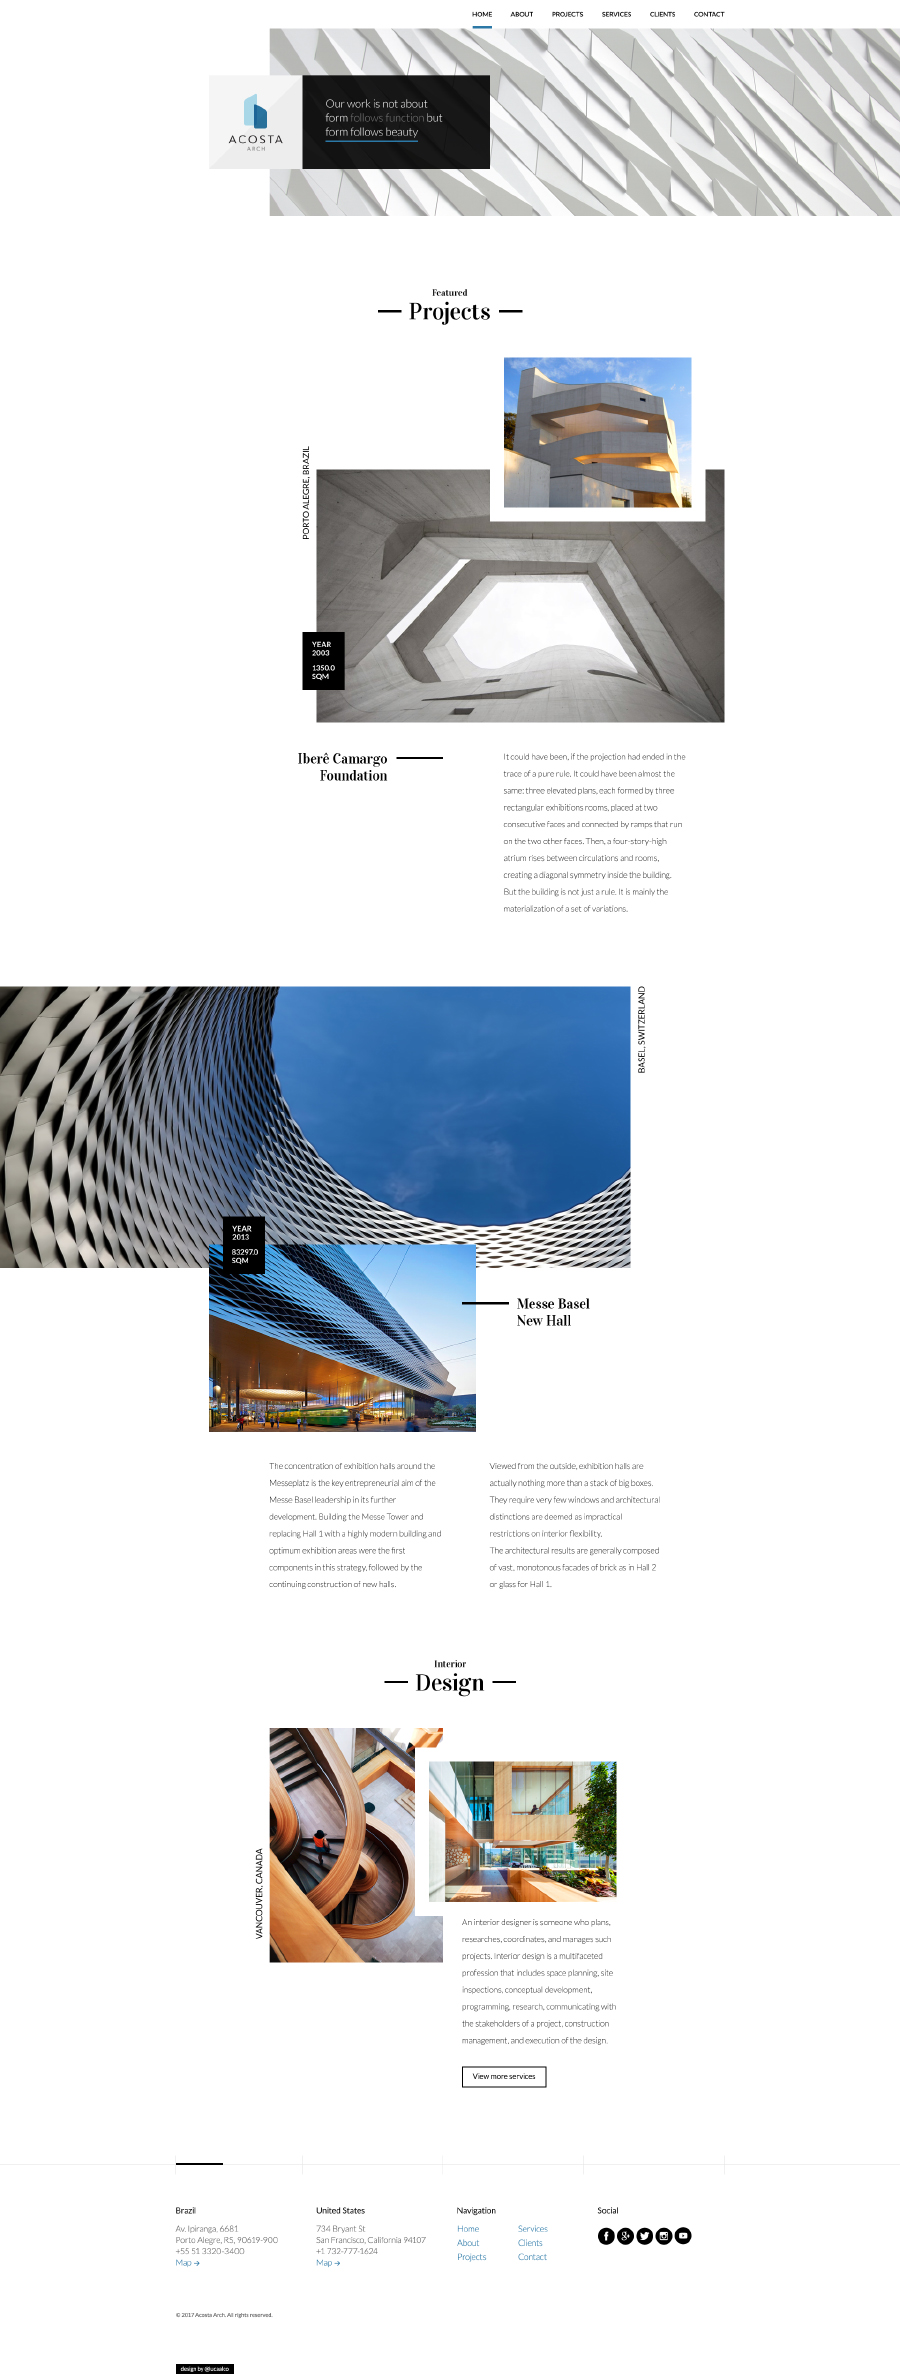 Architecture Design Template architecture free psd template - free design resources